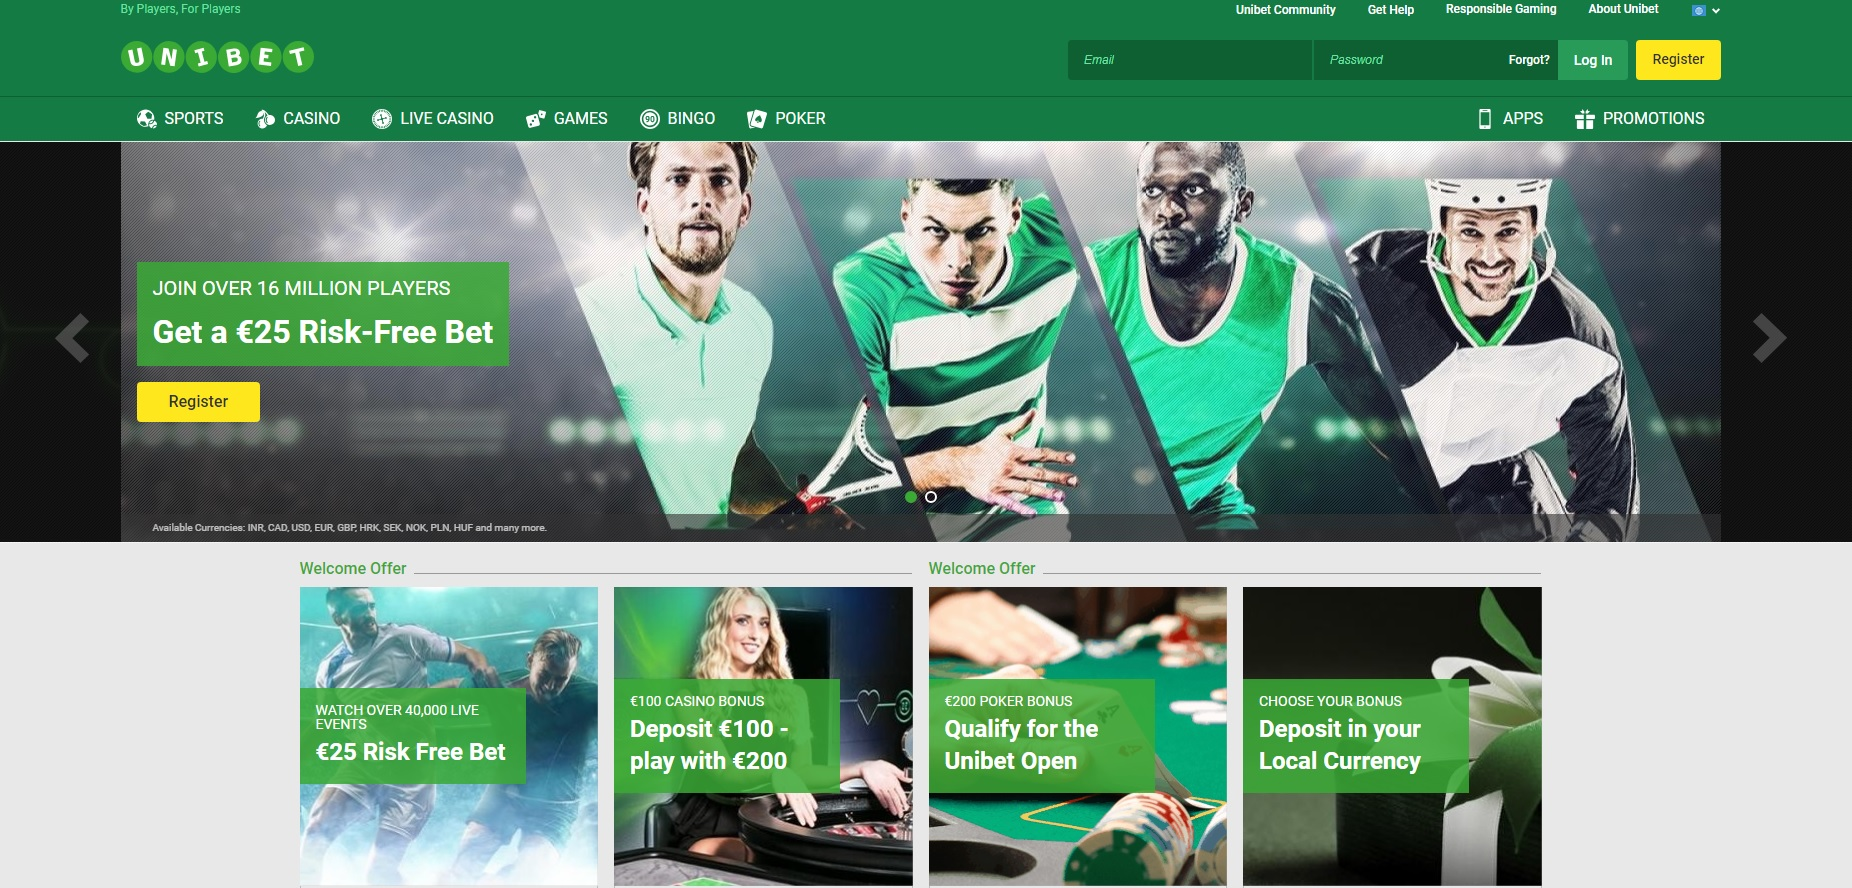 unibet - Smart Gamblers Club